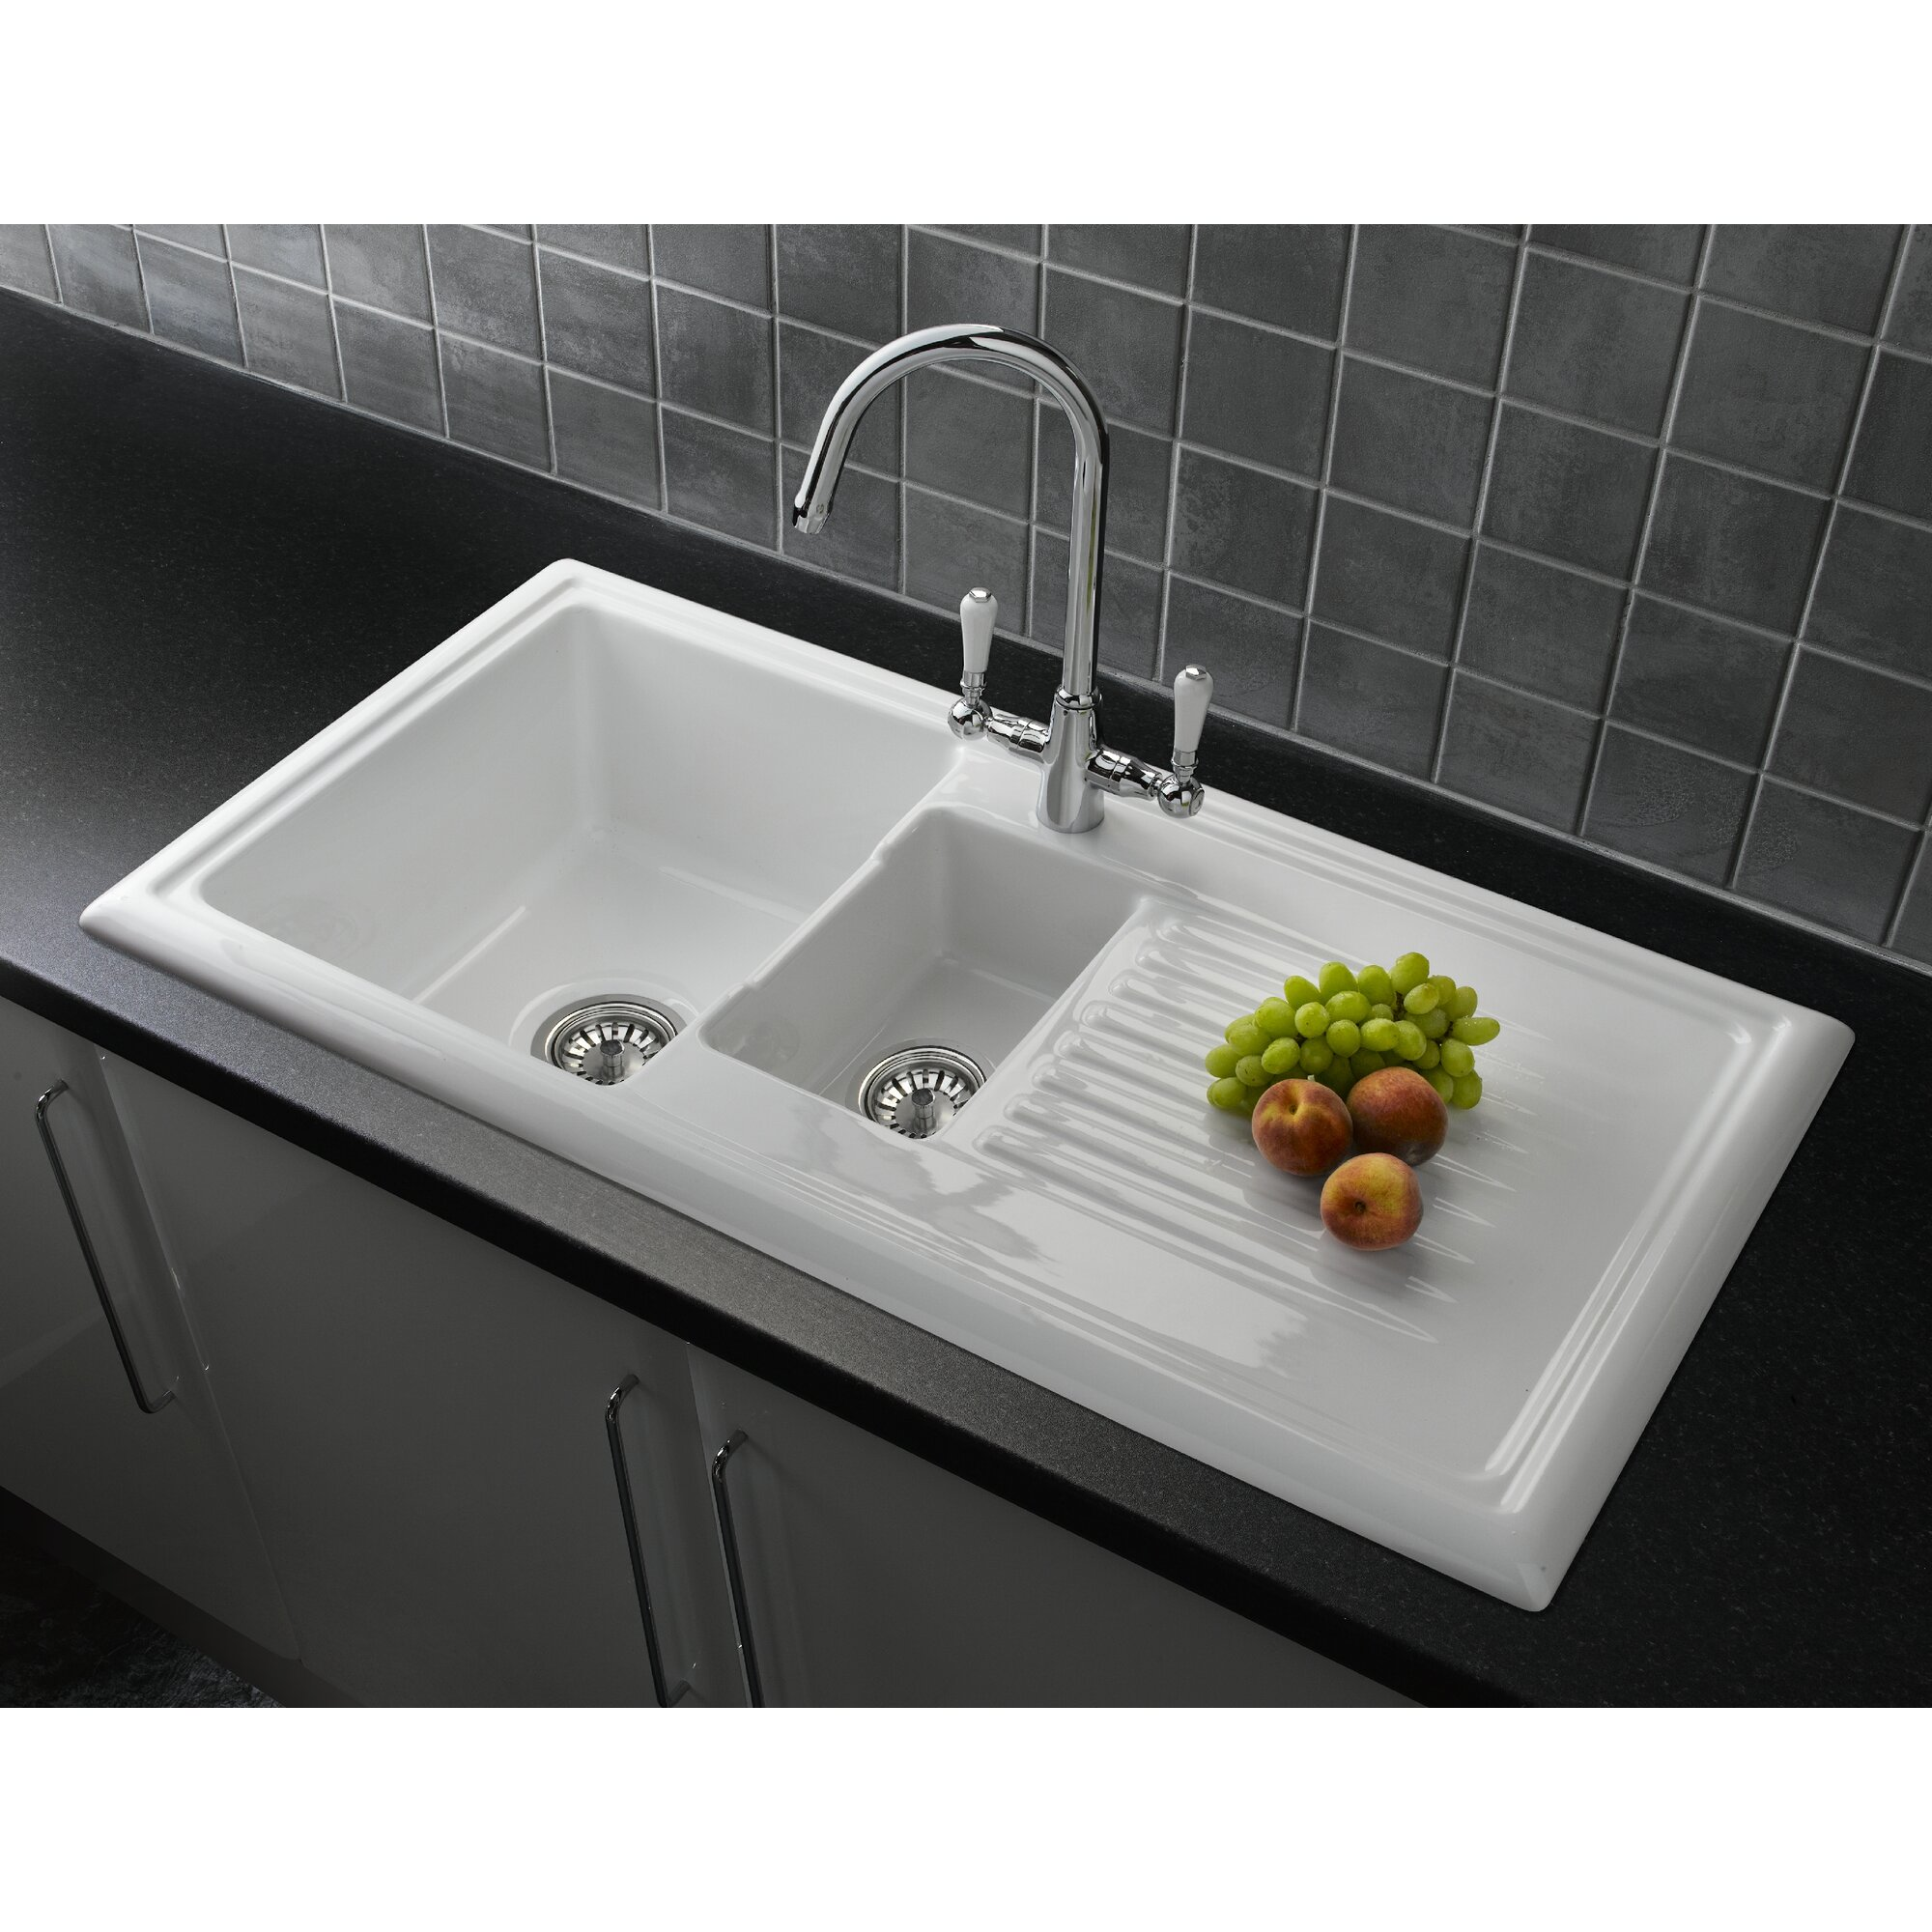 101cm X 52 5cm 1 1 2 Inset Kitchen Sink With Elbe Tap And Waste